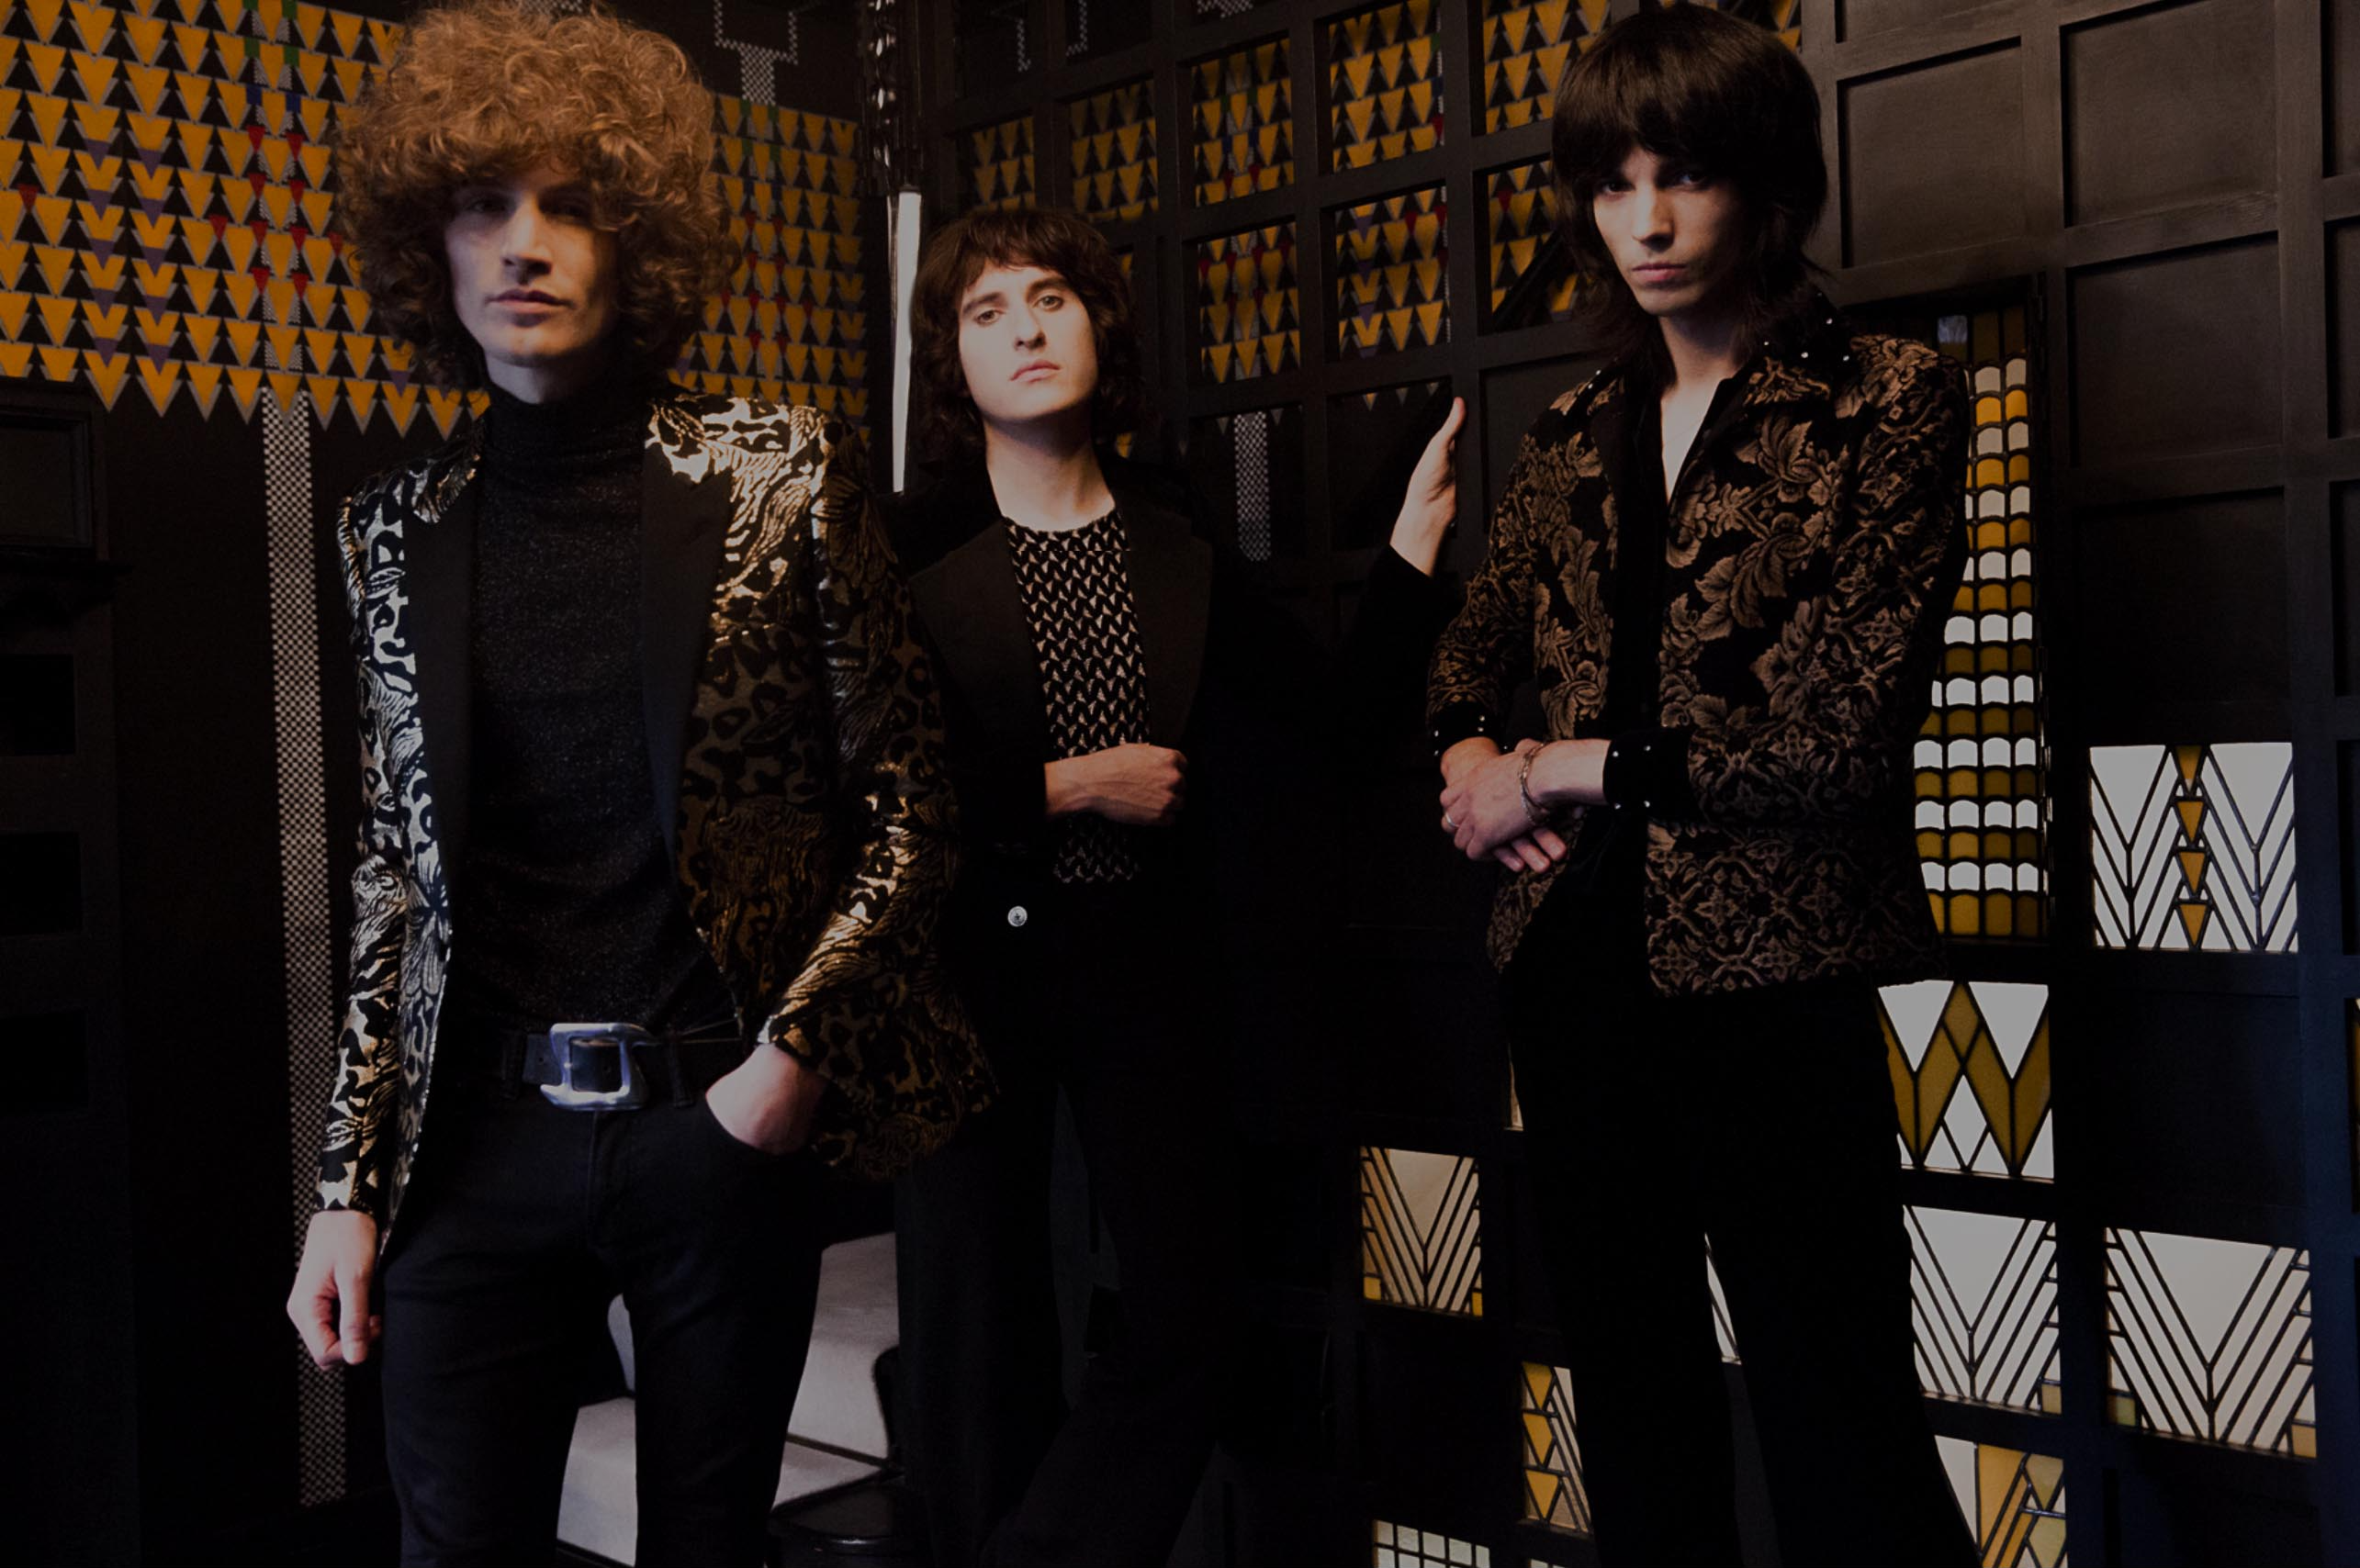 Temples   Hot Motion  Is an Uninspiring Emulation of Their Existing Sound